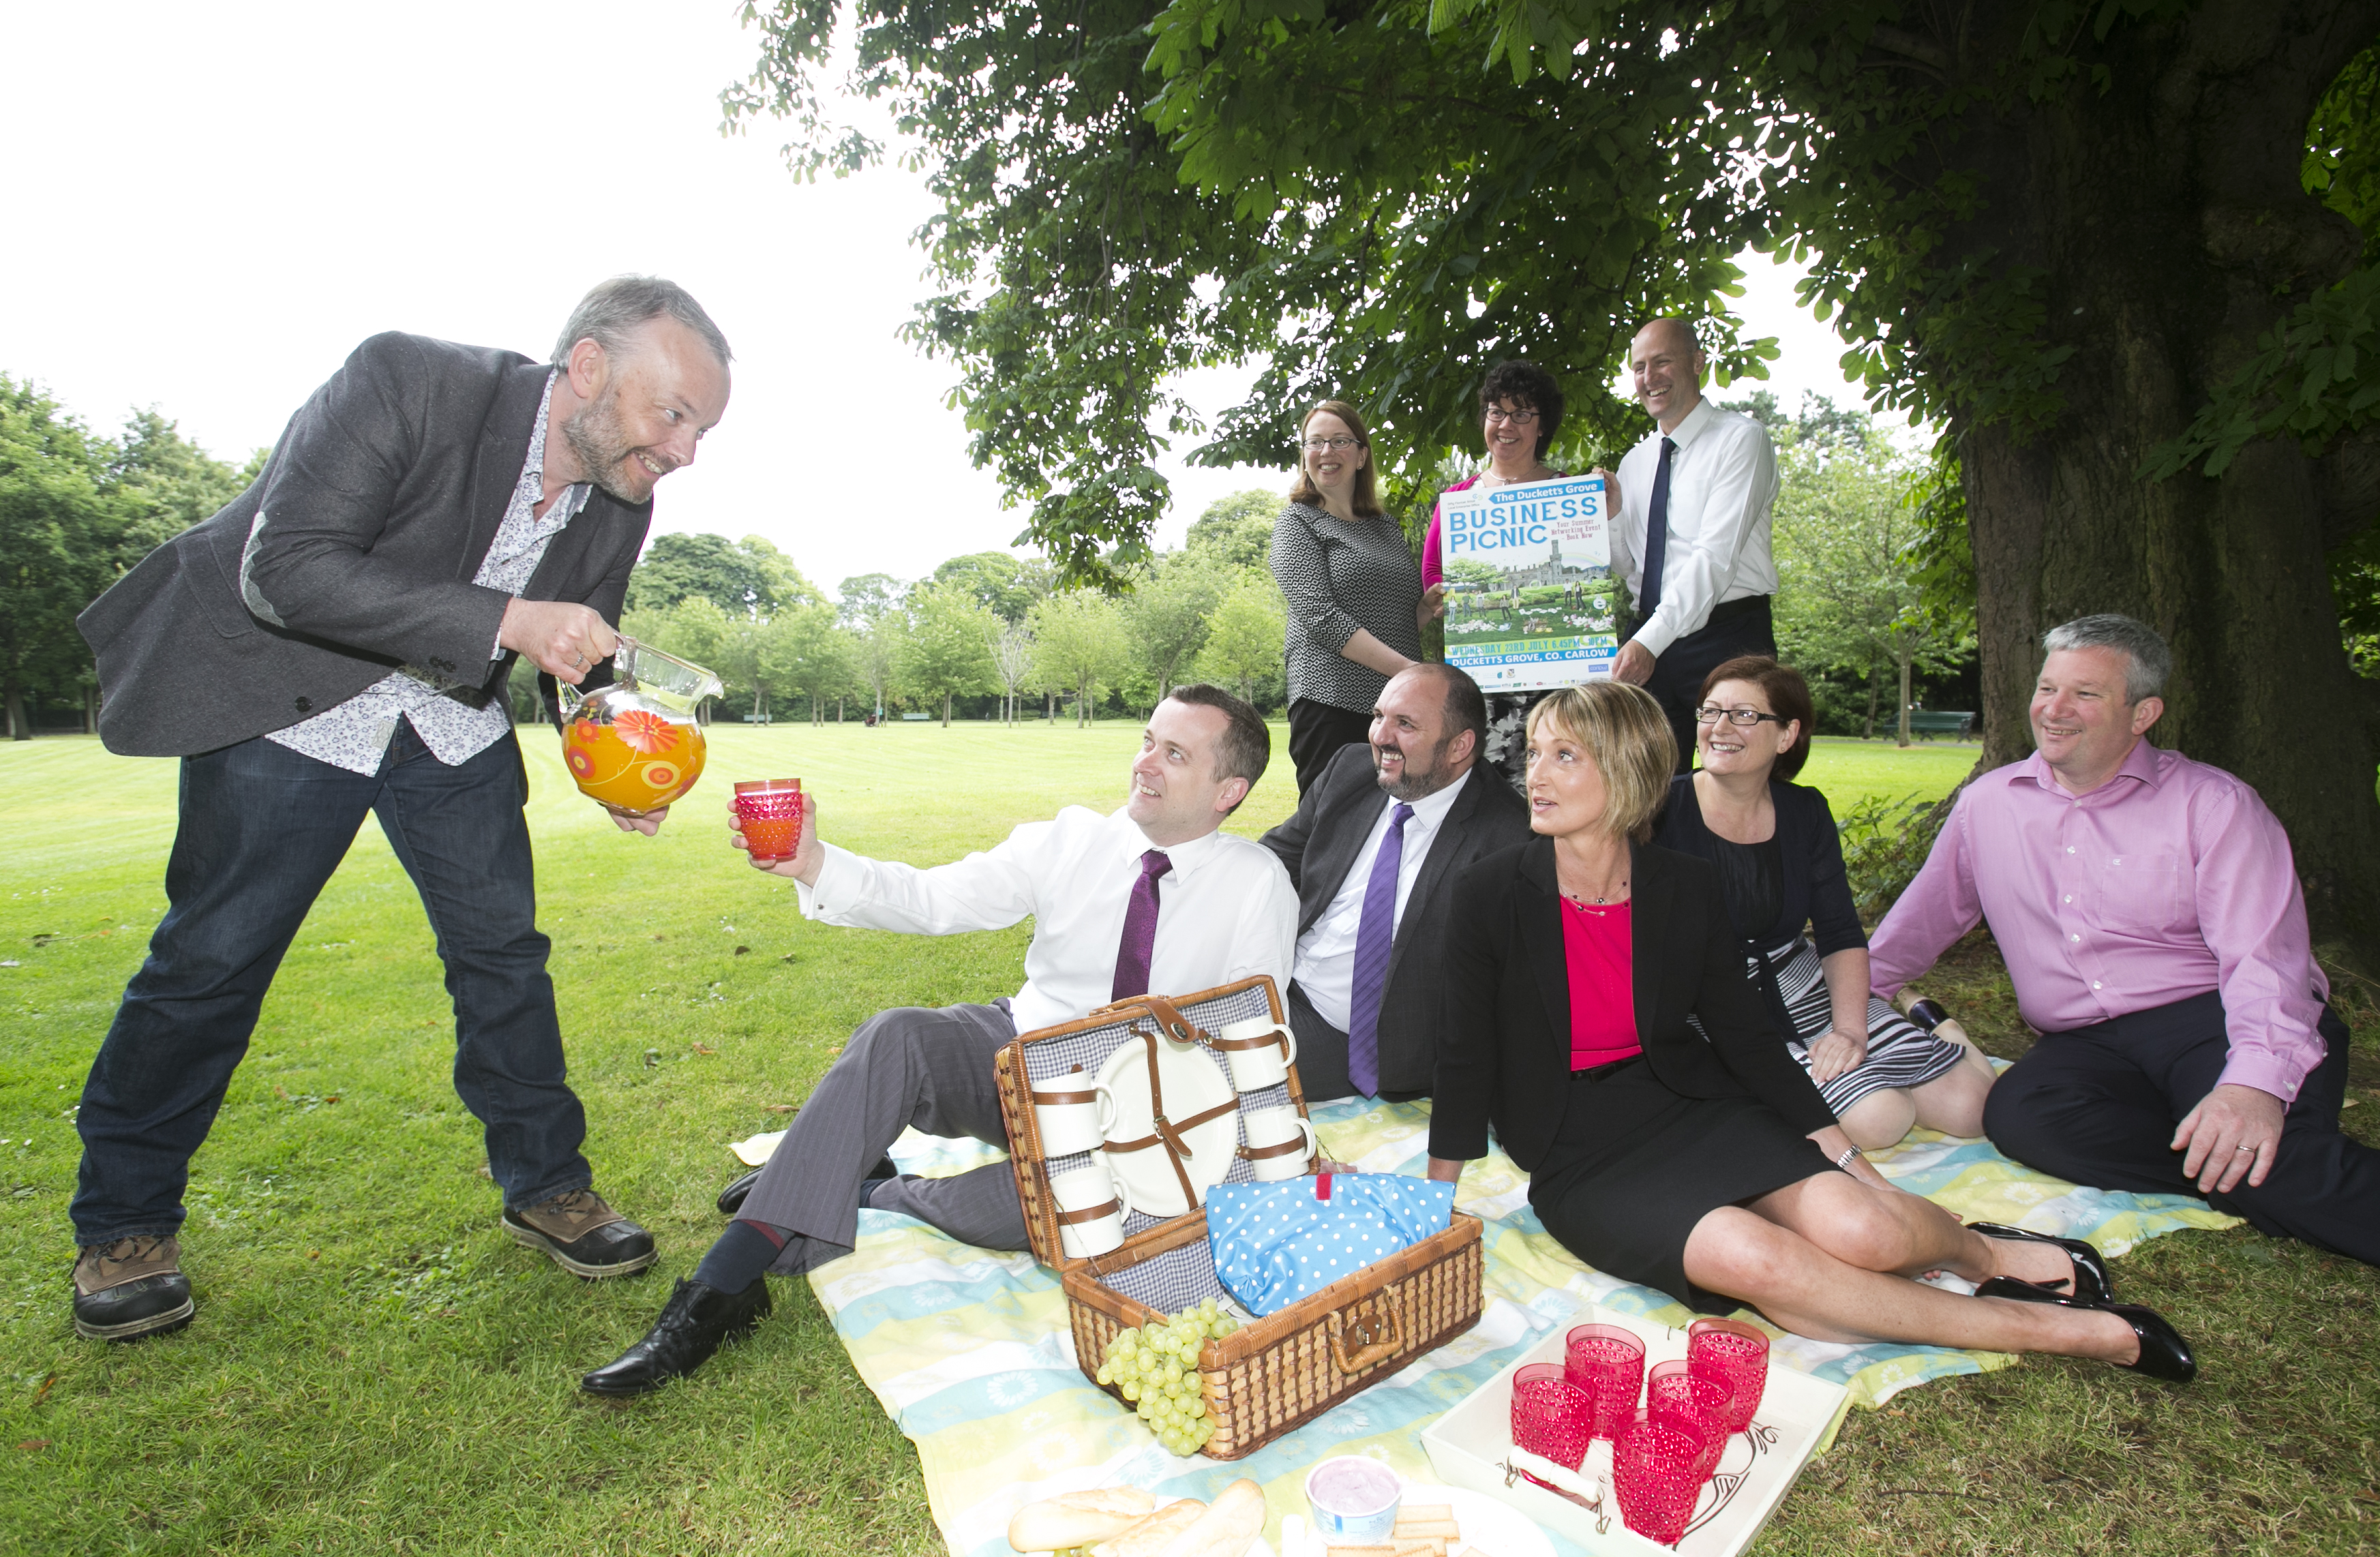 Business Picnic Launch